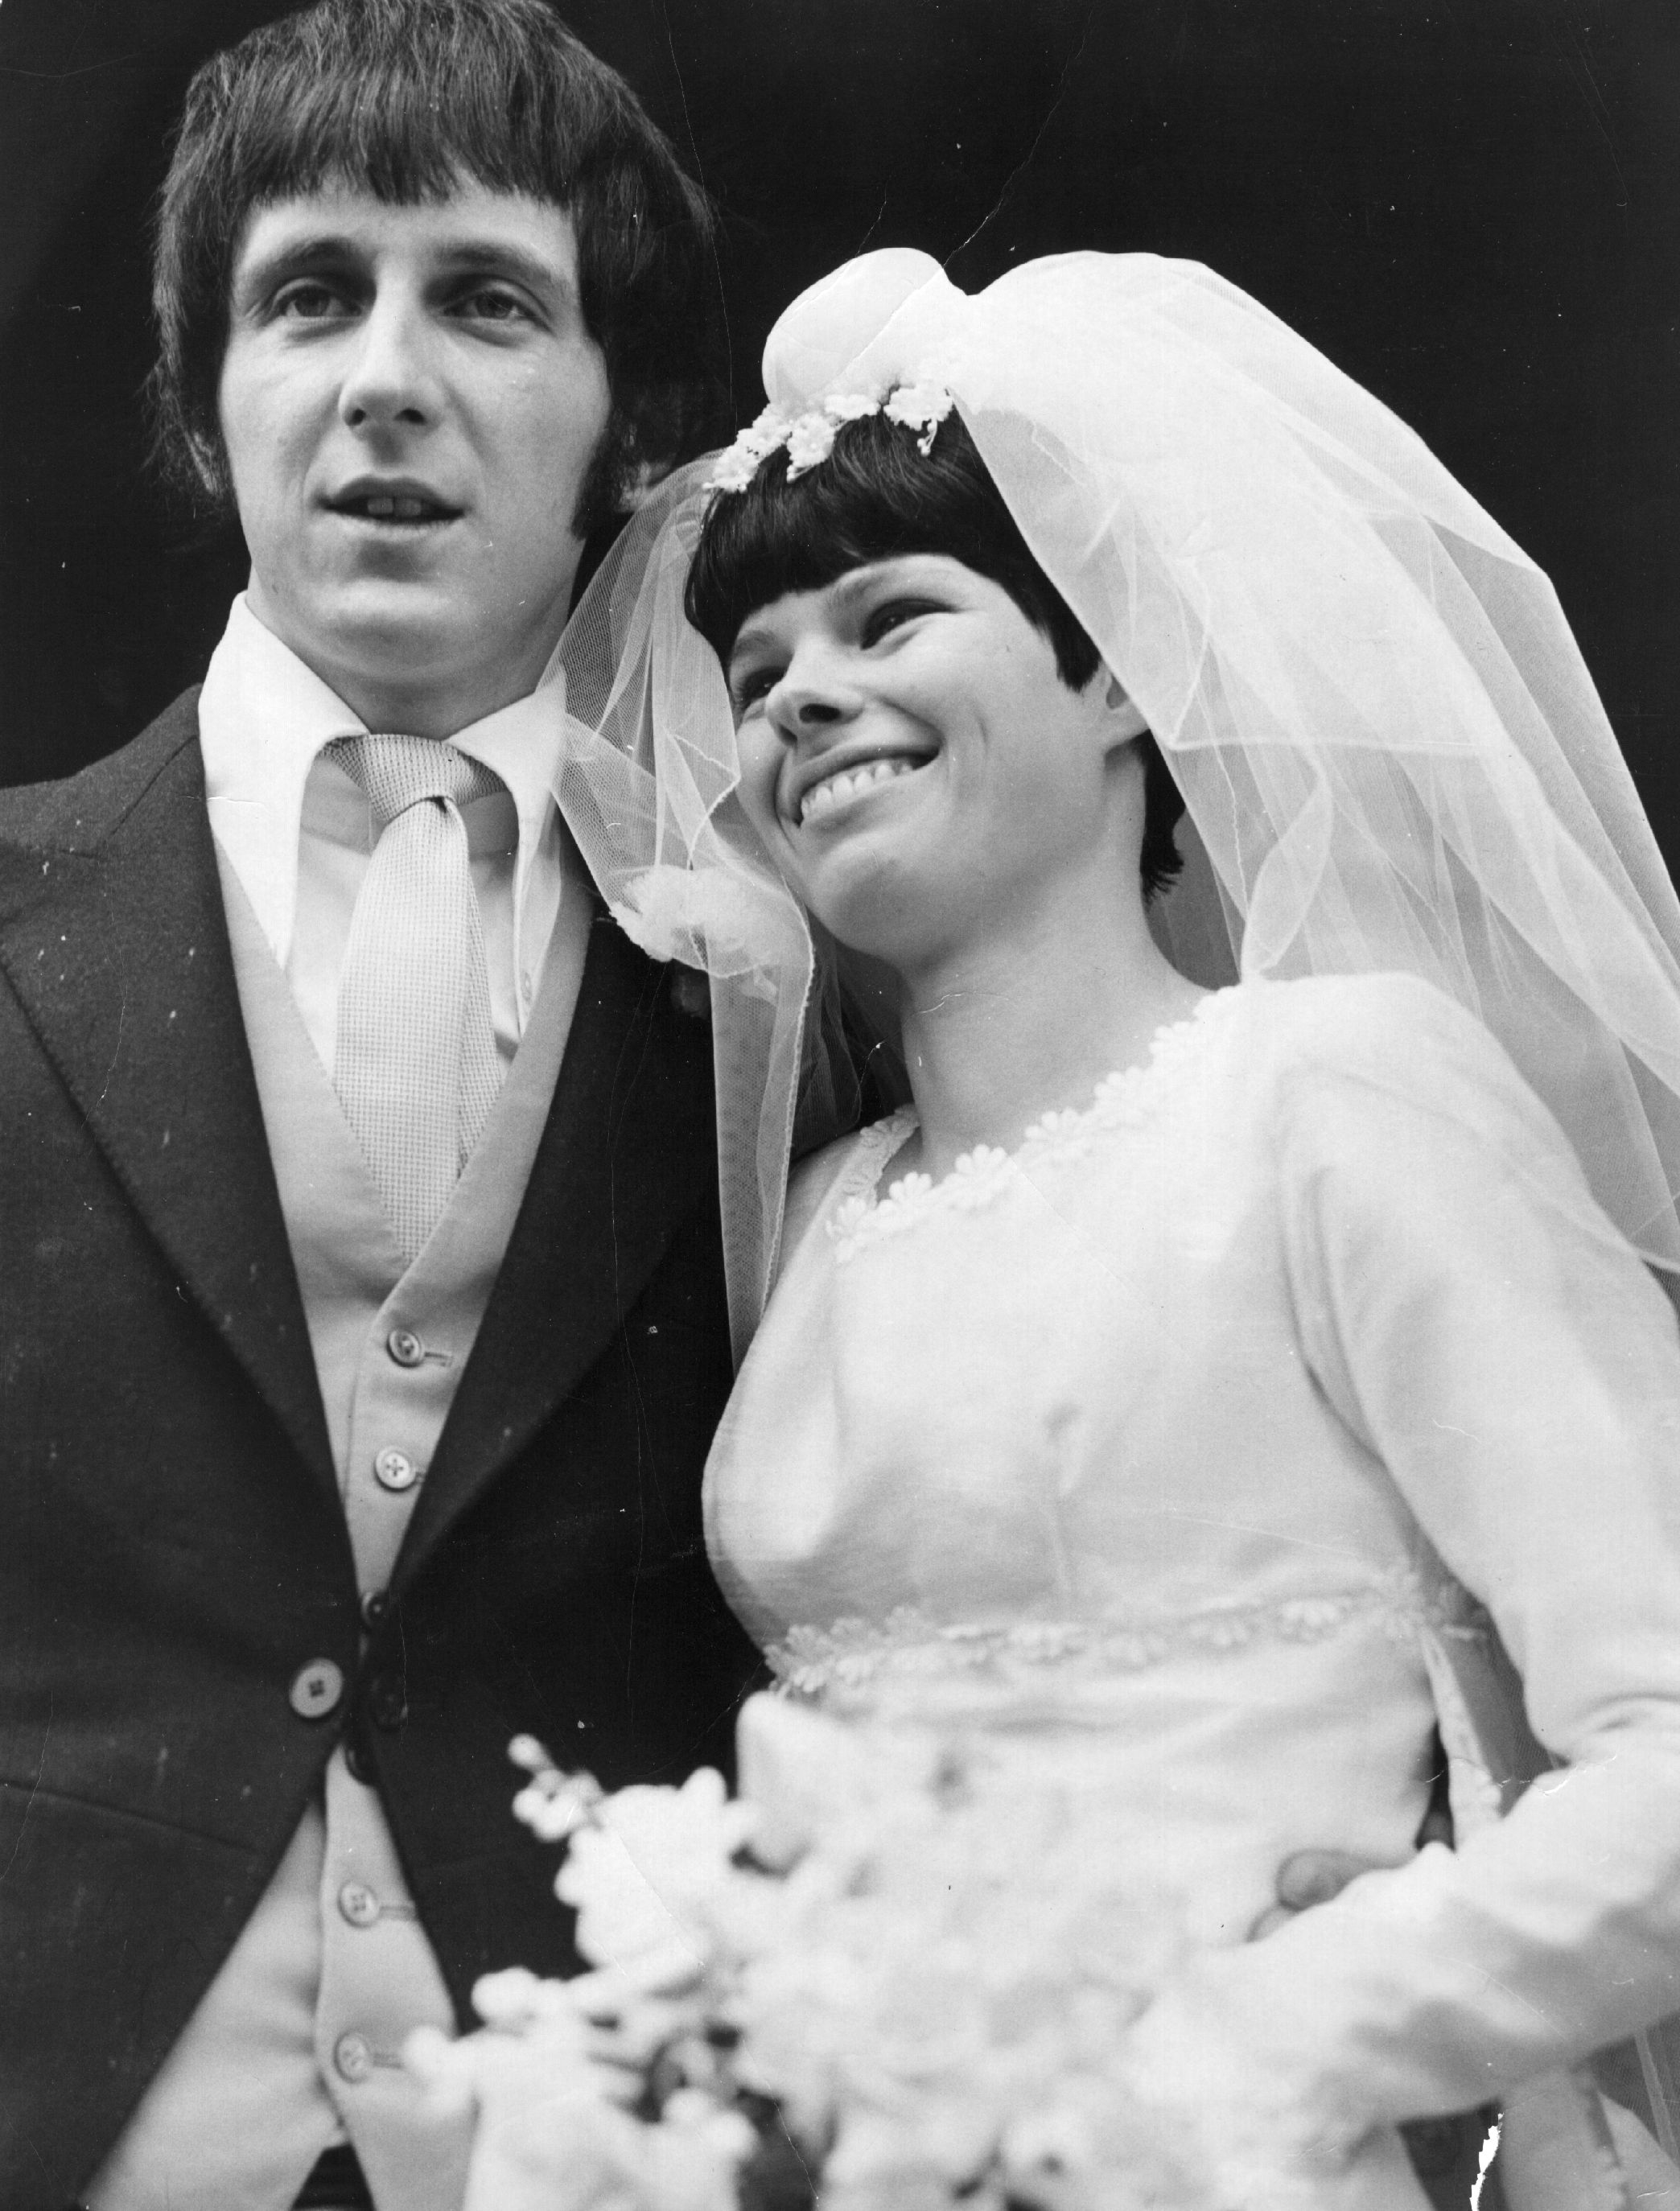 24th June 1967:  John Entwistle (1944 - 2002), bass player with British pop group The Who, weds MIss Alison Wise.  (Photo by Evening Standard/Getty Images)